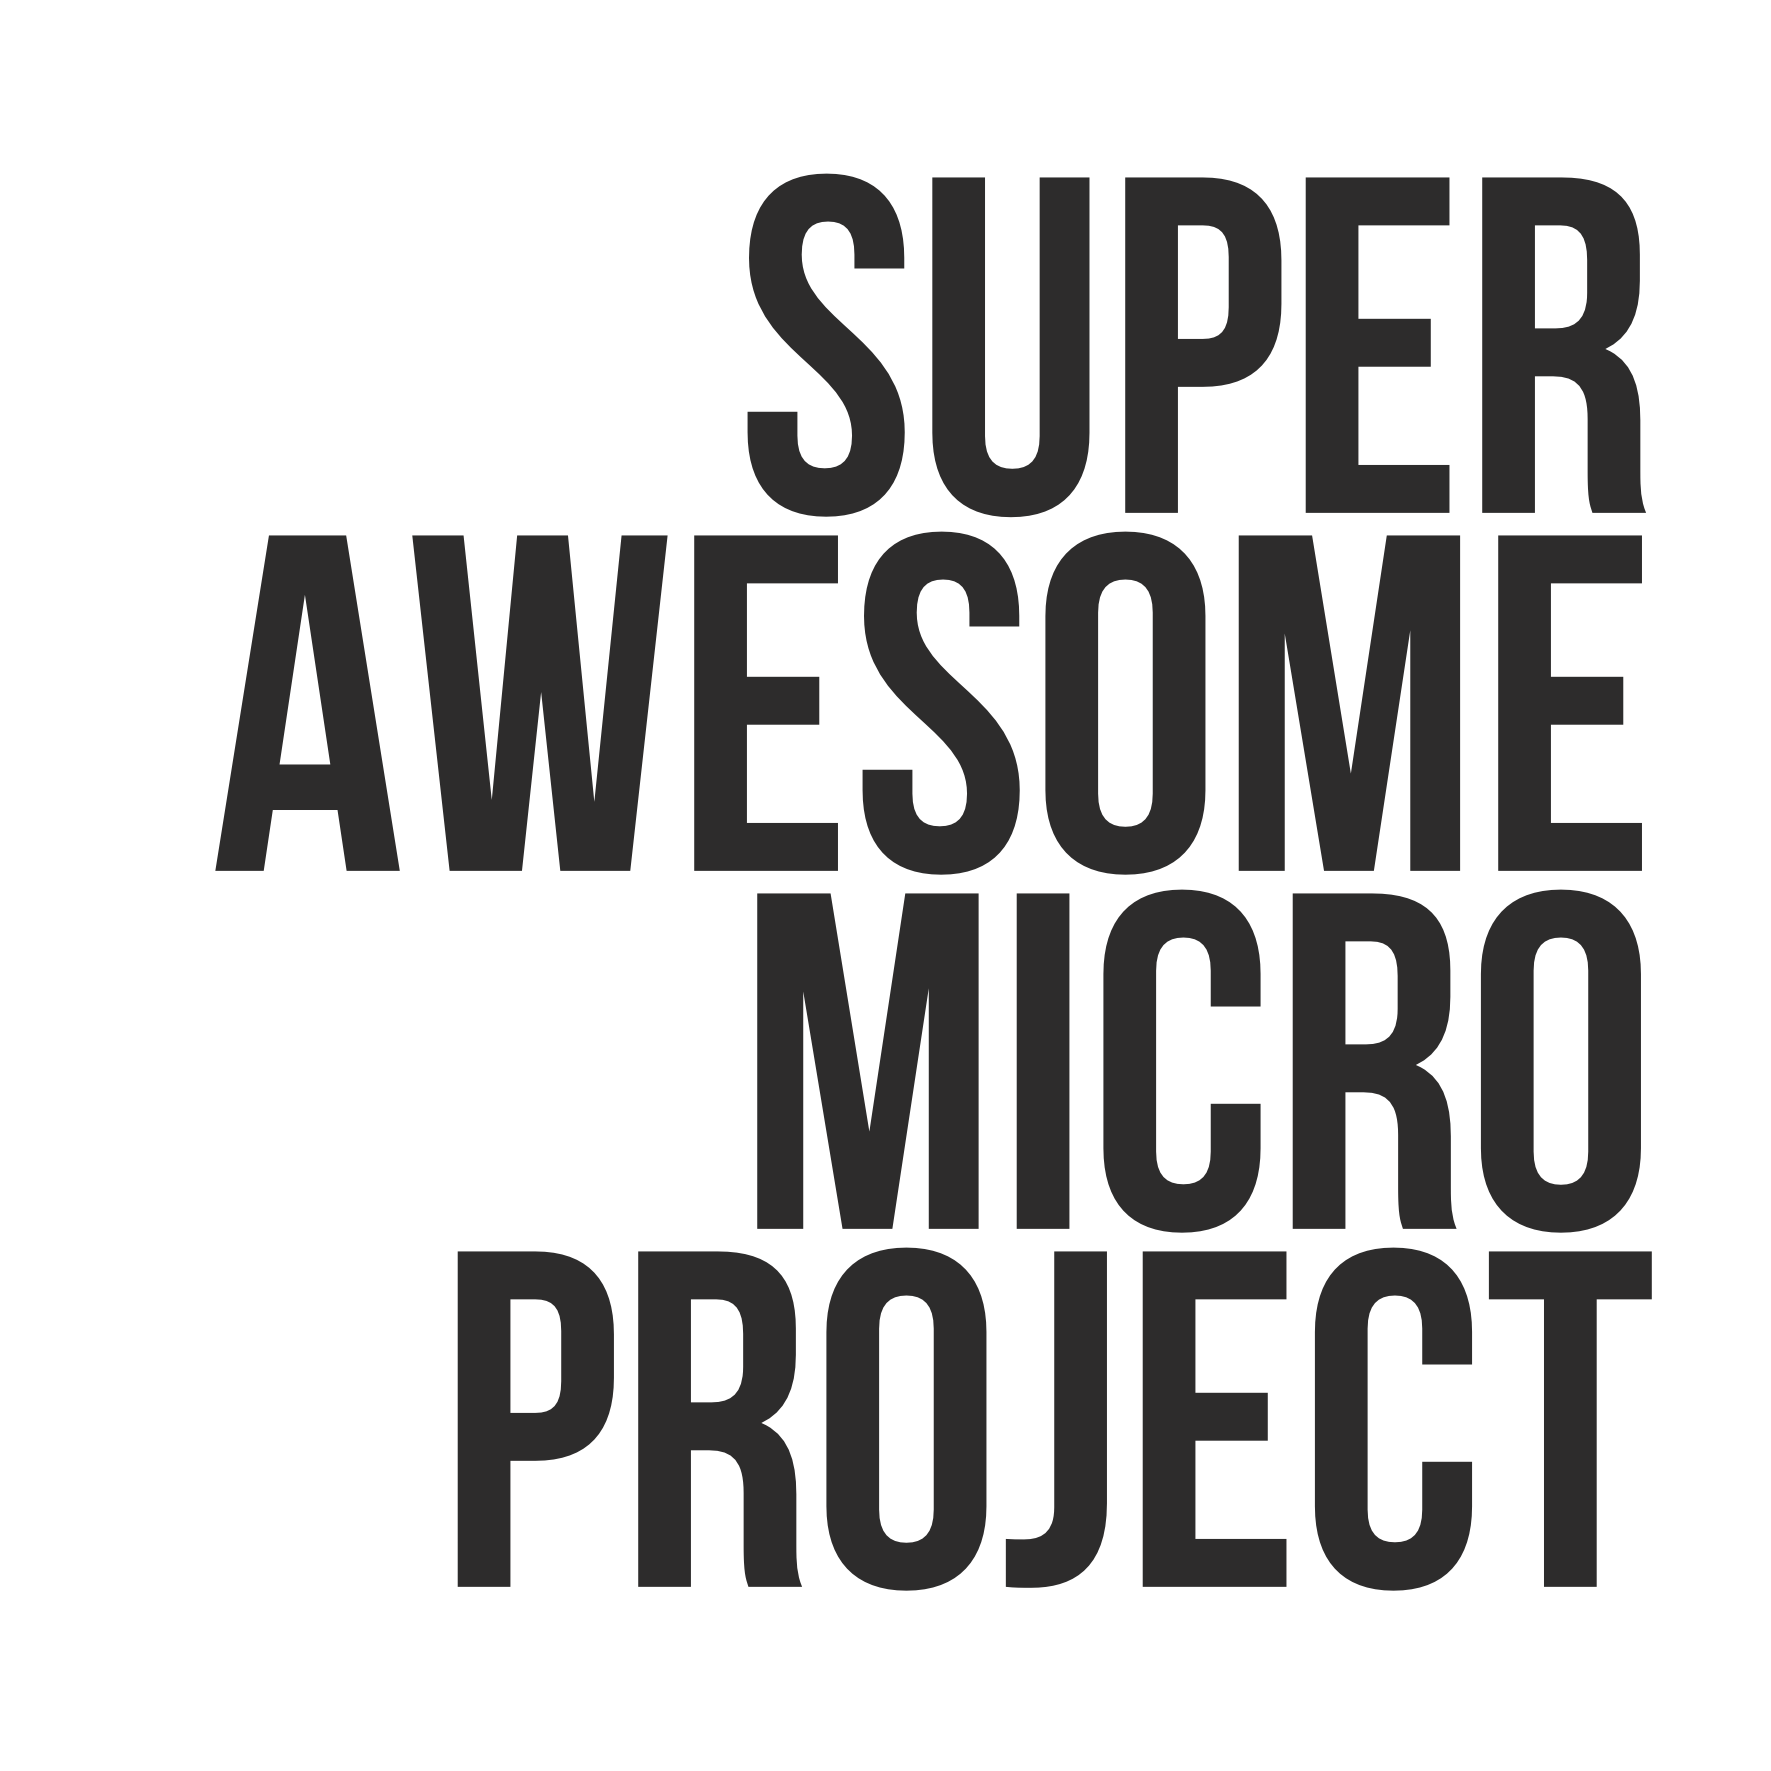 Super Awesome Micro Project - Stay Tuned #superawesomemicroproject